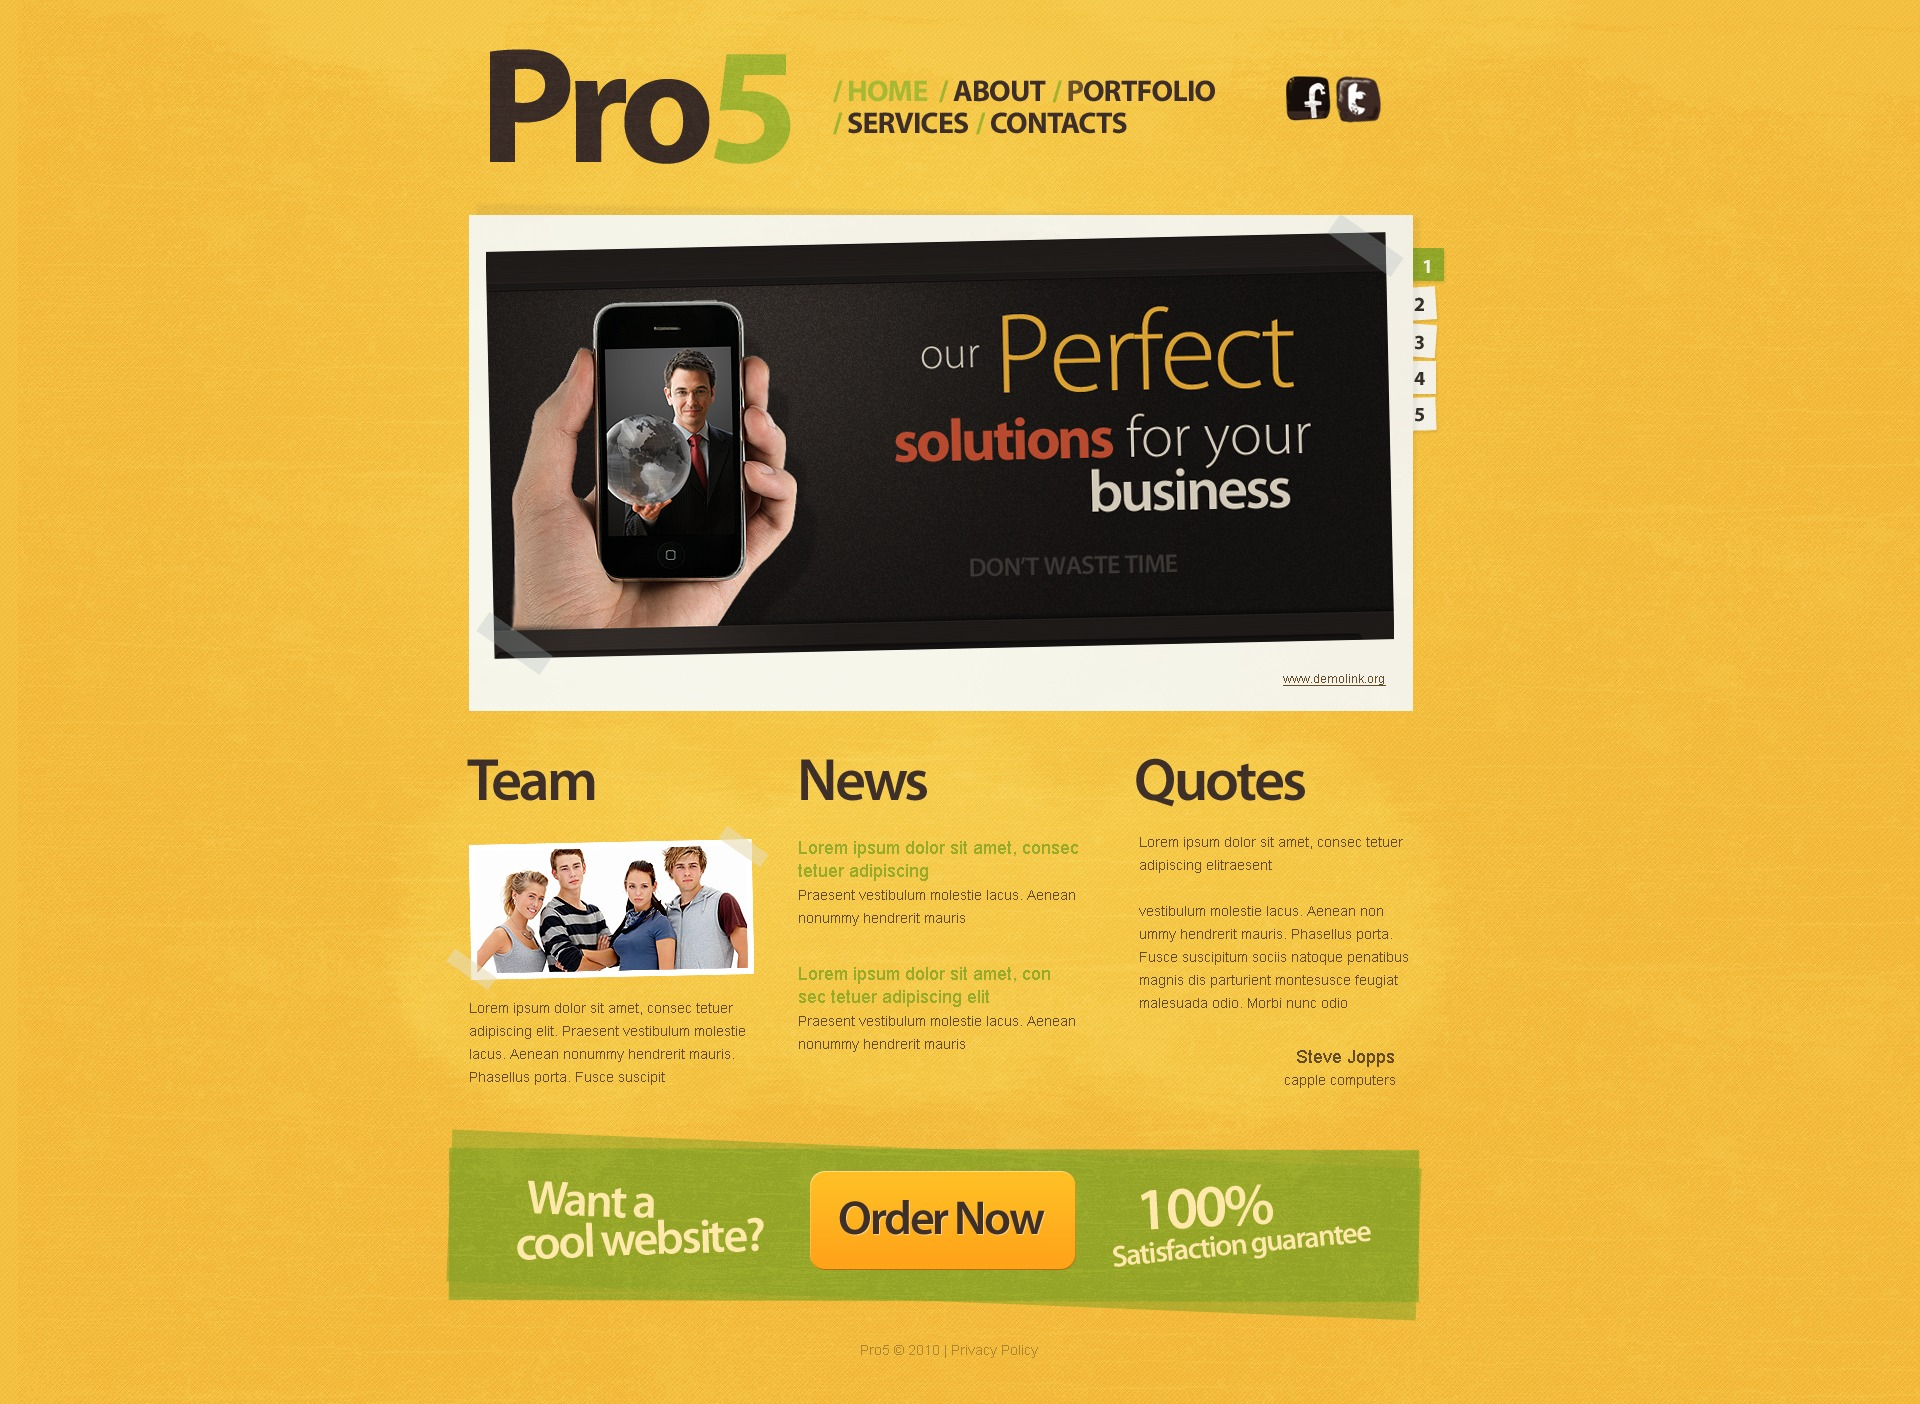 The Pro5 Design Studio PSD Design 54361, one of the best PSD templates of its kind (web design, flash 8, wide), also known as pro5 design studio PSD template, creative art gallery PSD template, artists PSD template, painting PSD template, painters PSD template, web development PSD template, webmasters PSD template, designers PSD template, internet PSD template, www PSD template, sites PSD template, web design PSD template, webpage PSD template, personal portfolio and related with pro5 design studio, creative art gallery, artists, painting, painters, web development, webmasters, designers, internet, www, sites, web design, webpage, personal portfolio, etc.